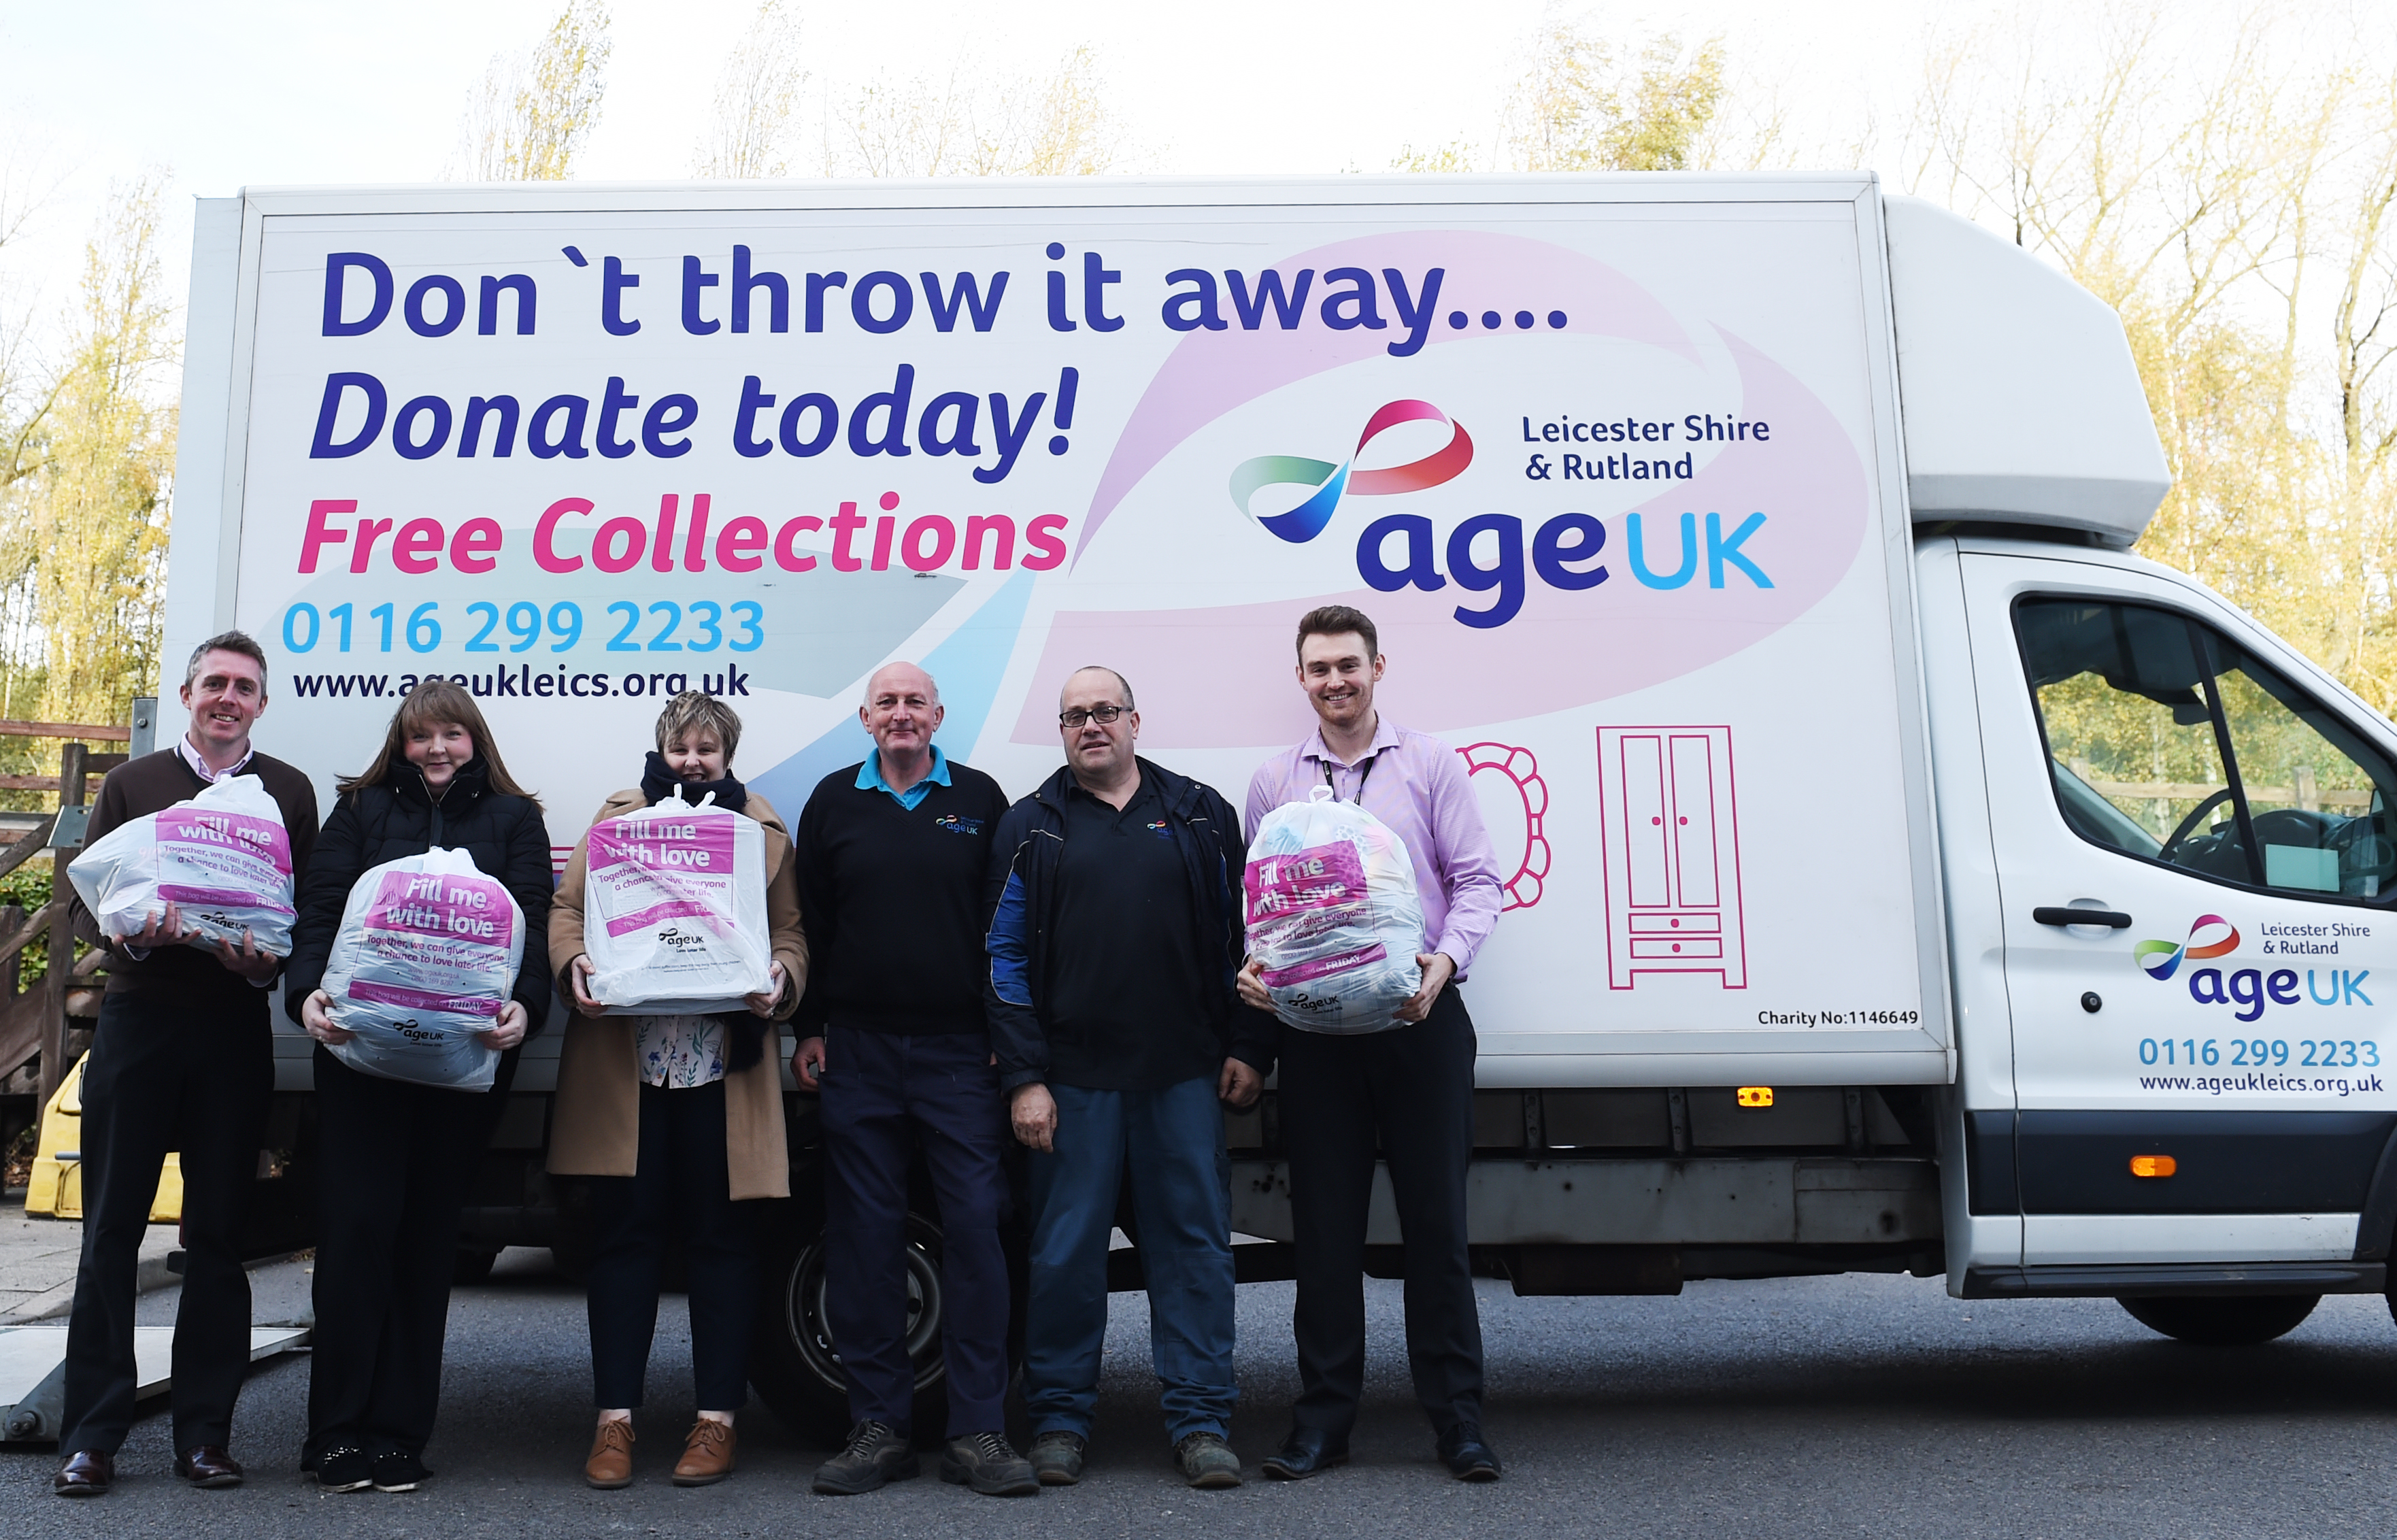 Pall-Ex team tackles Big Bag Challenge to support local charity